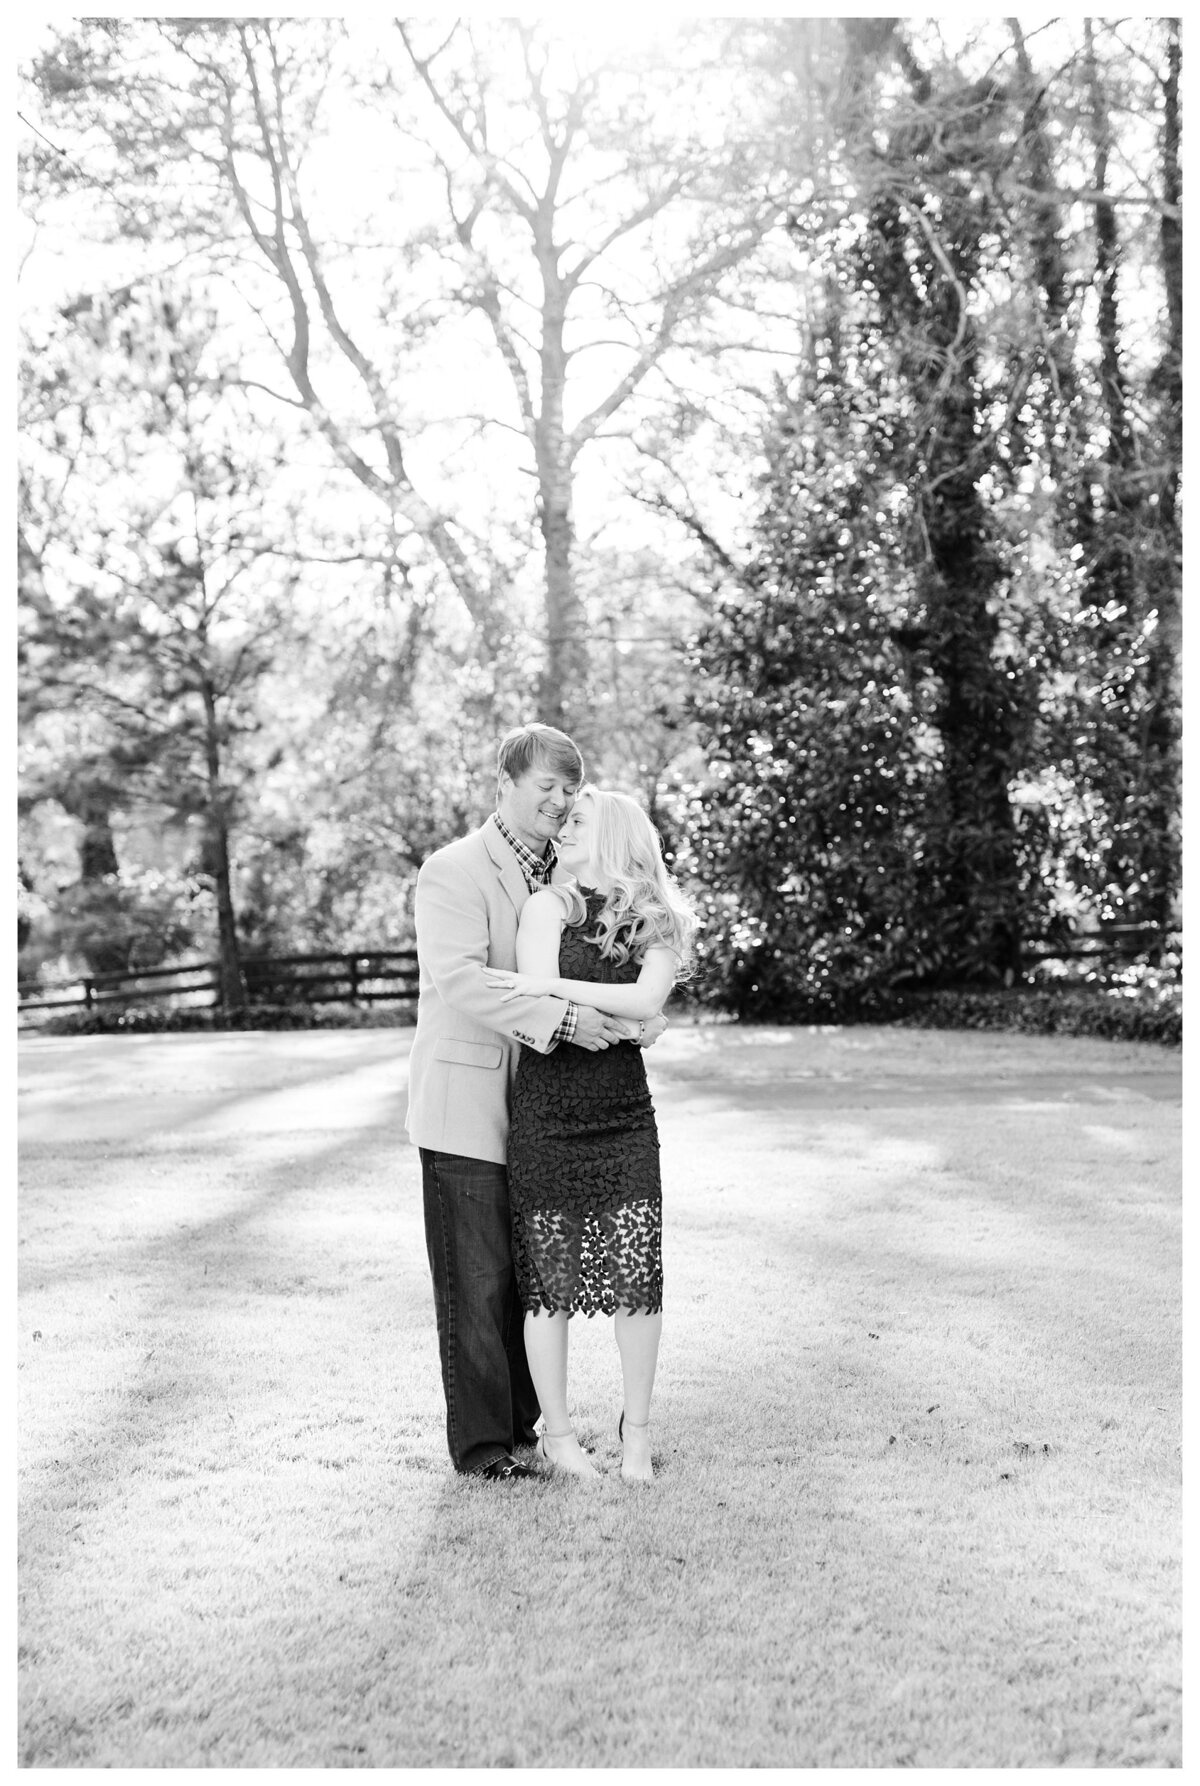 canady-engagements-atlanta-wedding-photographer-06